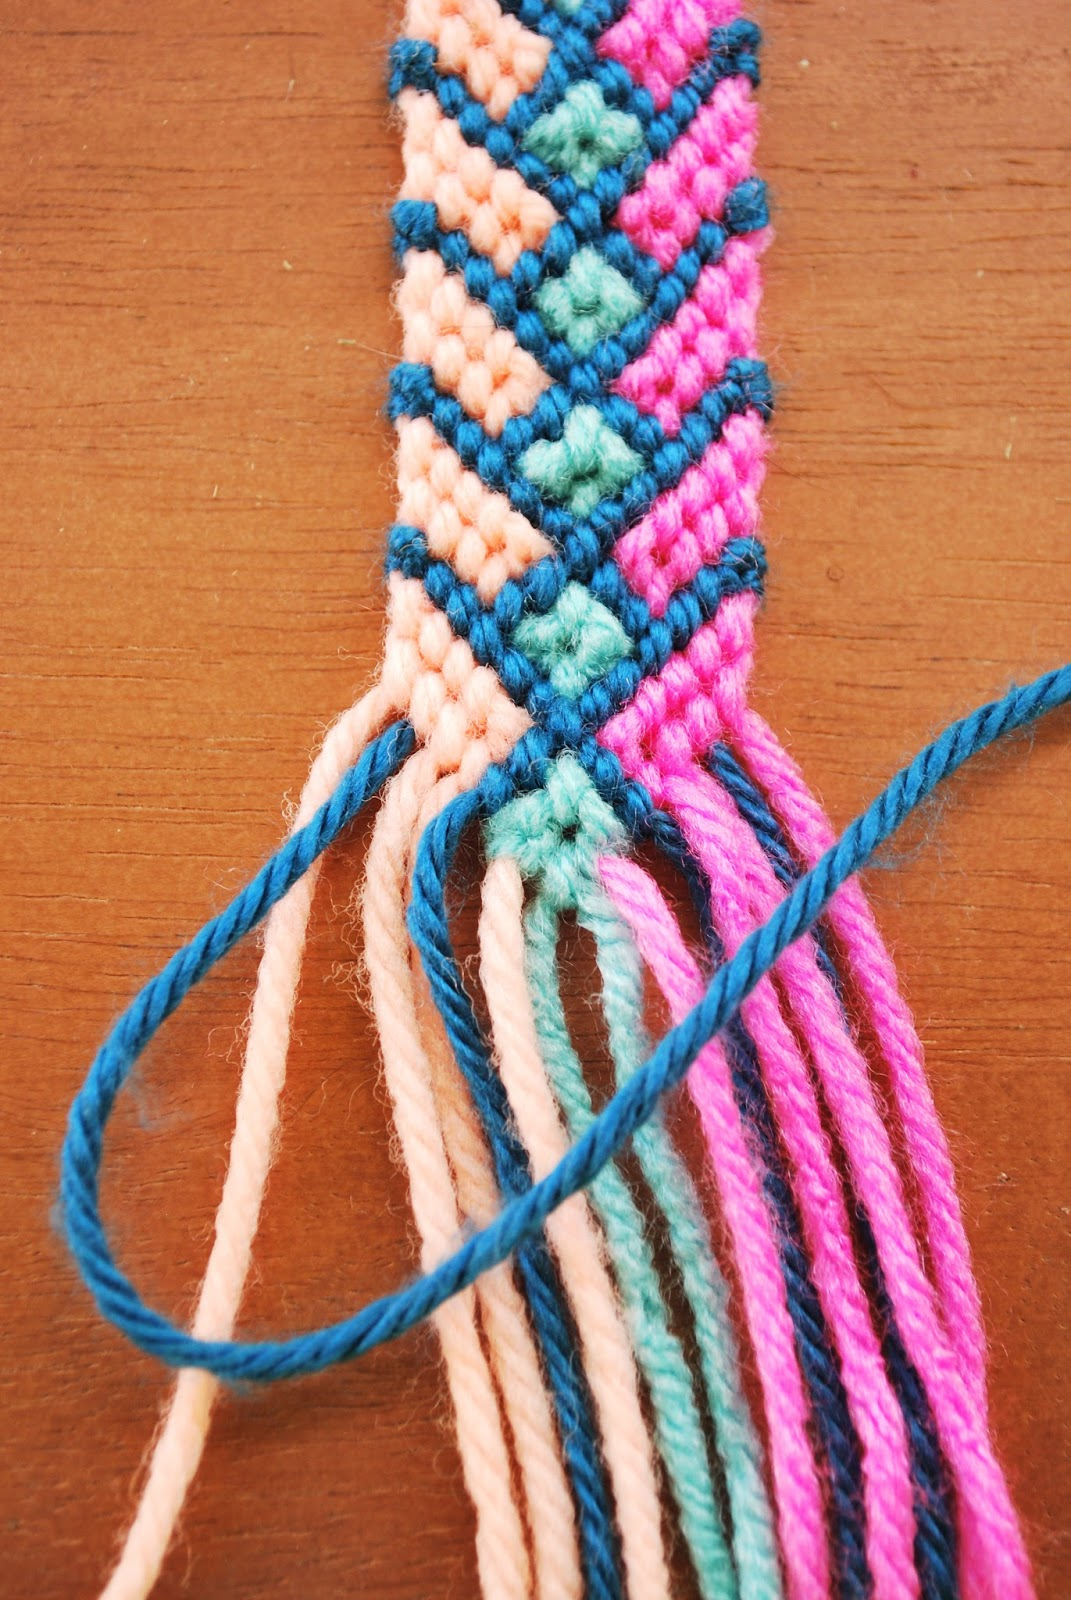 how to make string bracelets - photo #24